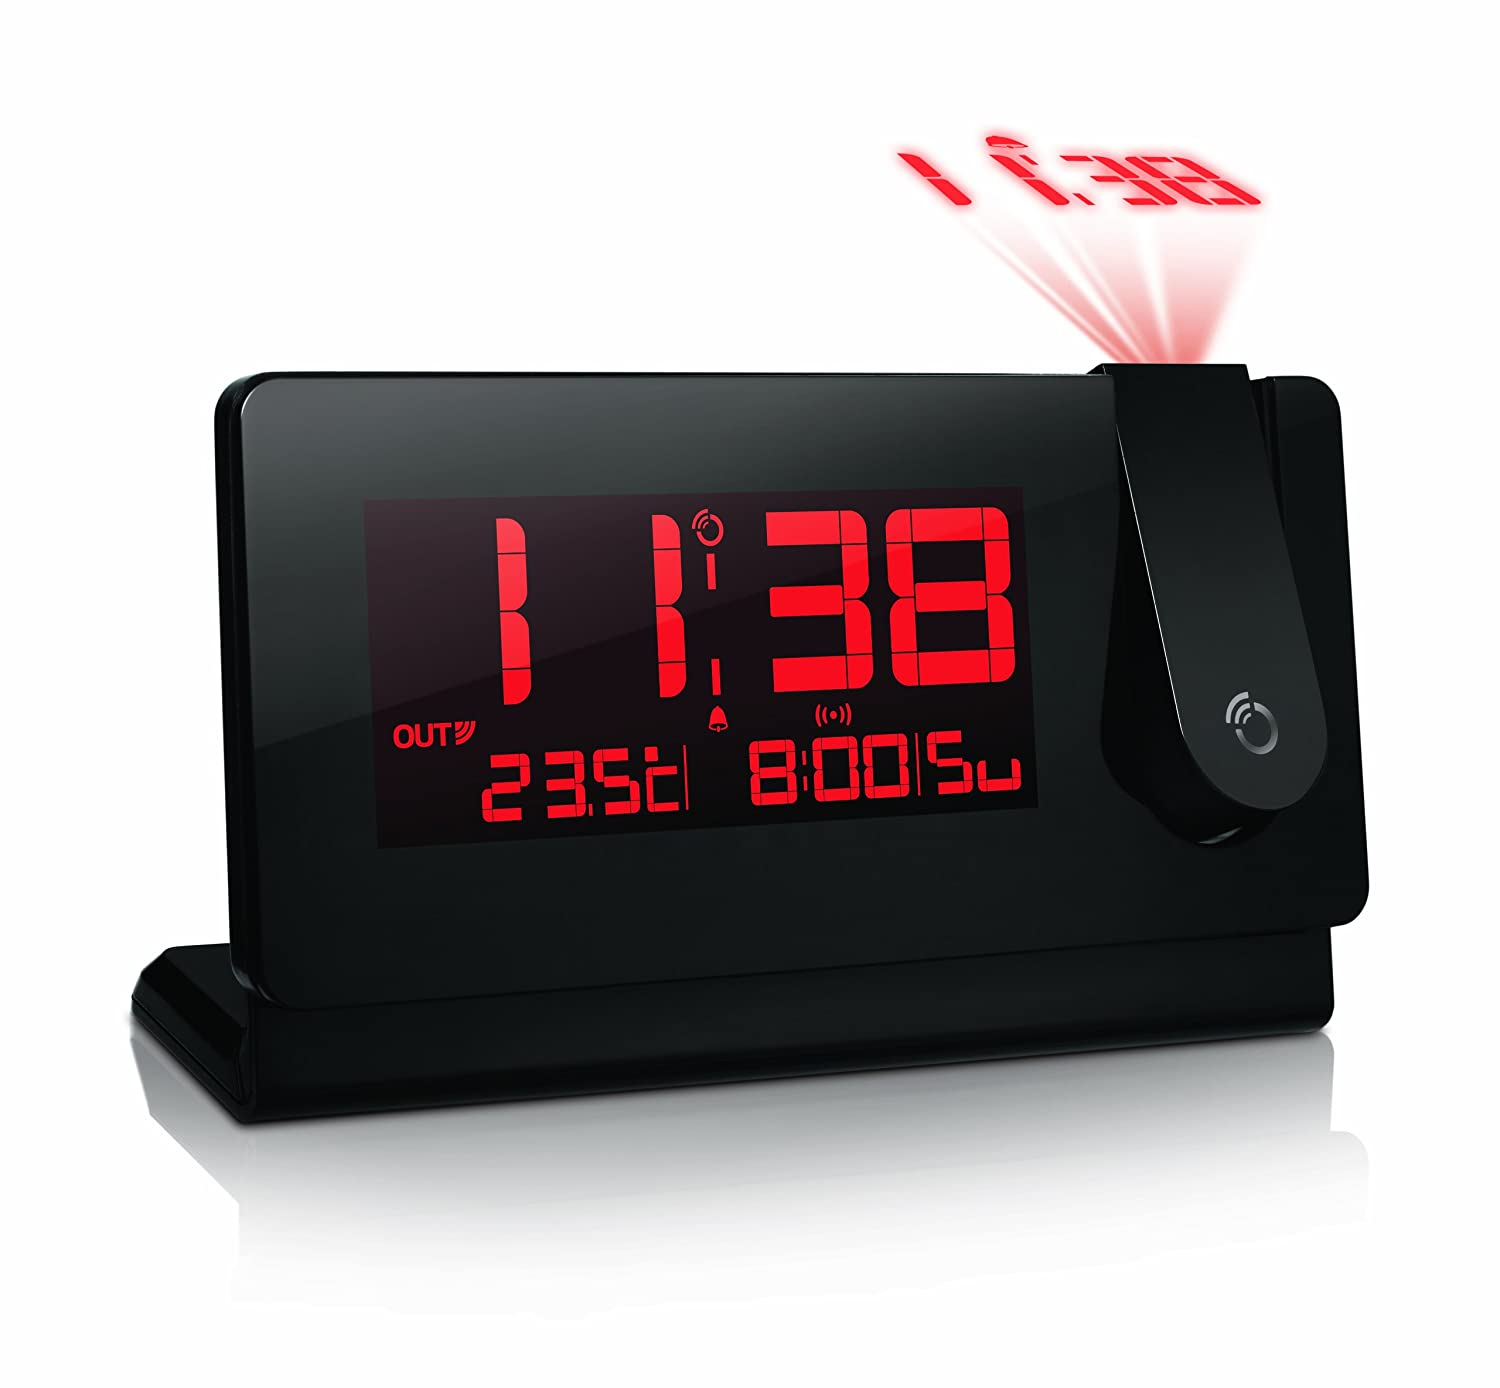 projection clock radio Projection alarm clocks showing 40 of 215 results that match your query search product result  emerson smartset alarm clock radio with bluetooth speaker & charging station, er100102 product image  entry level projection alarm clock by la crosse technology product image price $ 17 42.